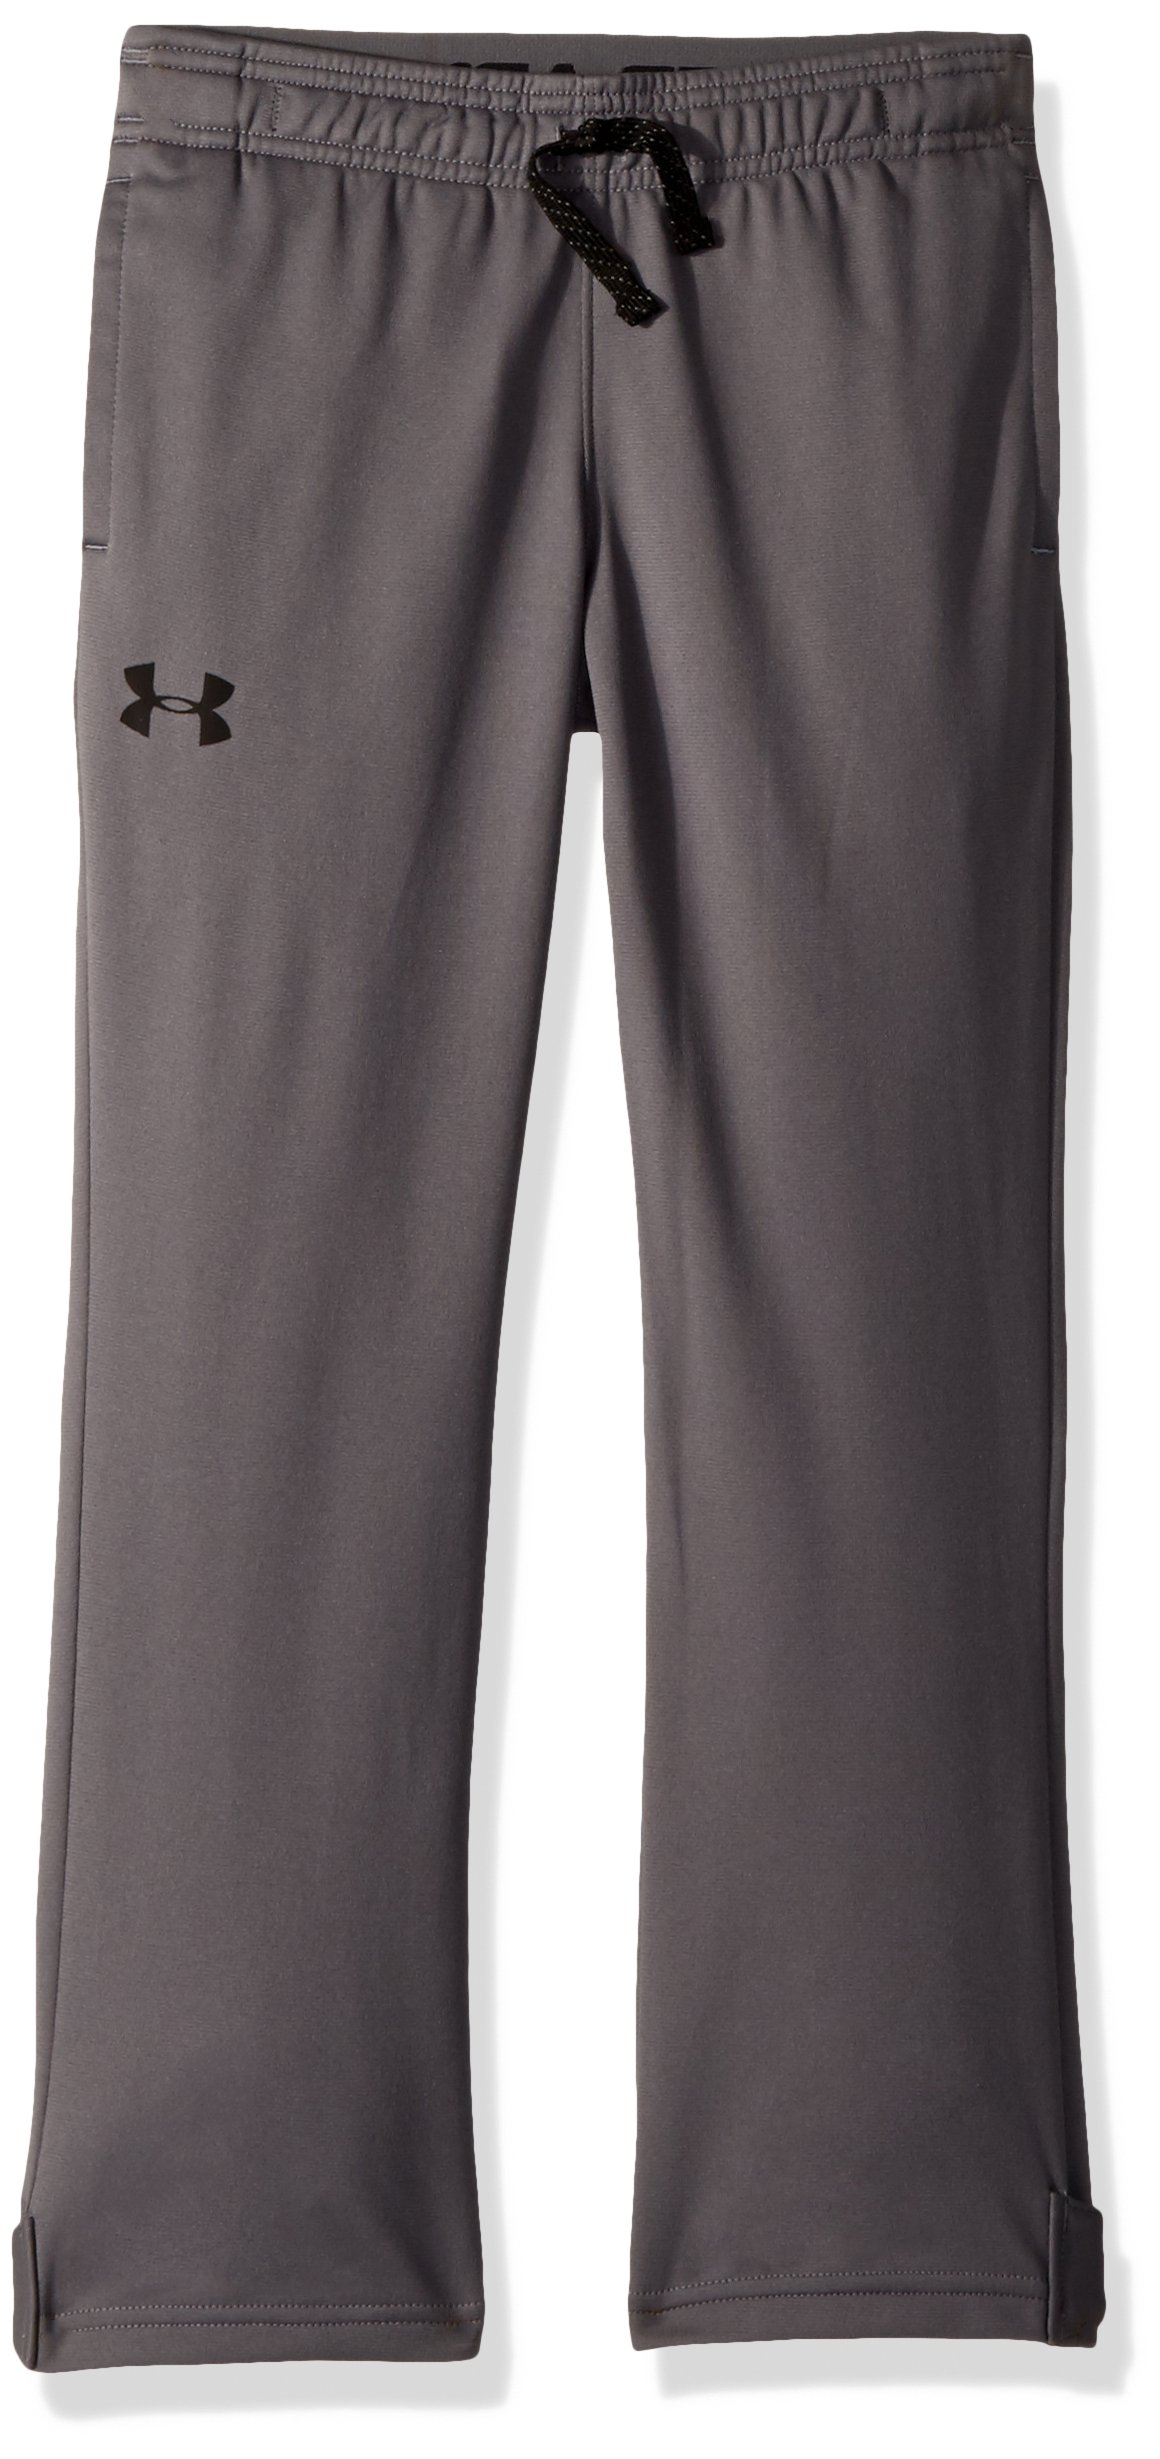 Under Armour Boys' Brawler Slim Pants,Graphite (040)/Black, Youth X-Small